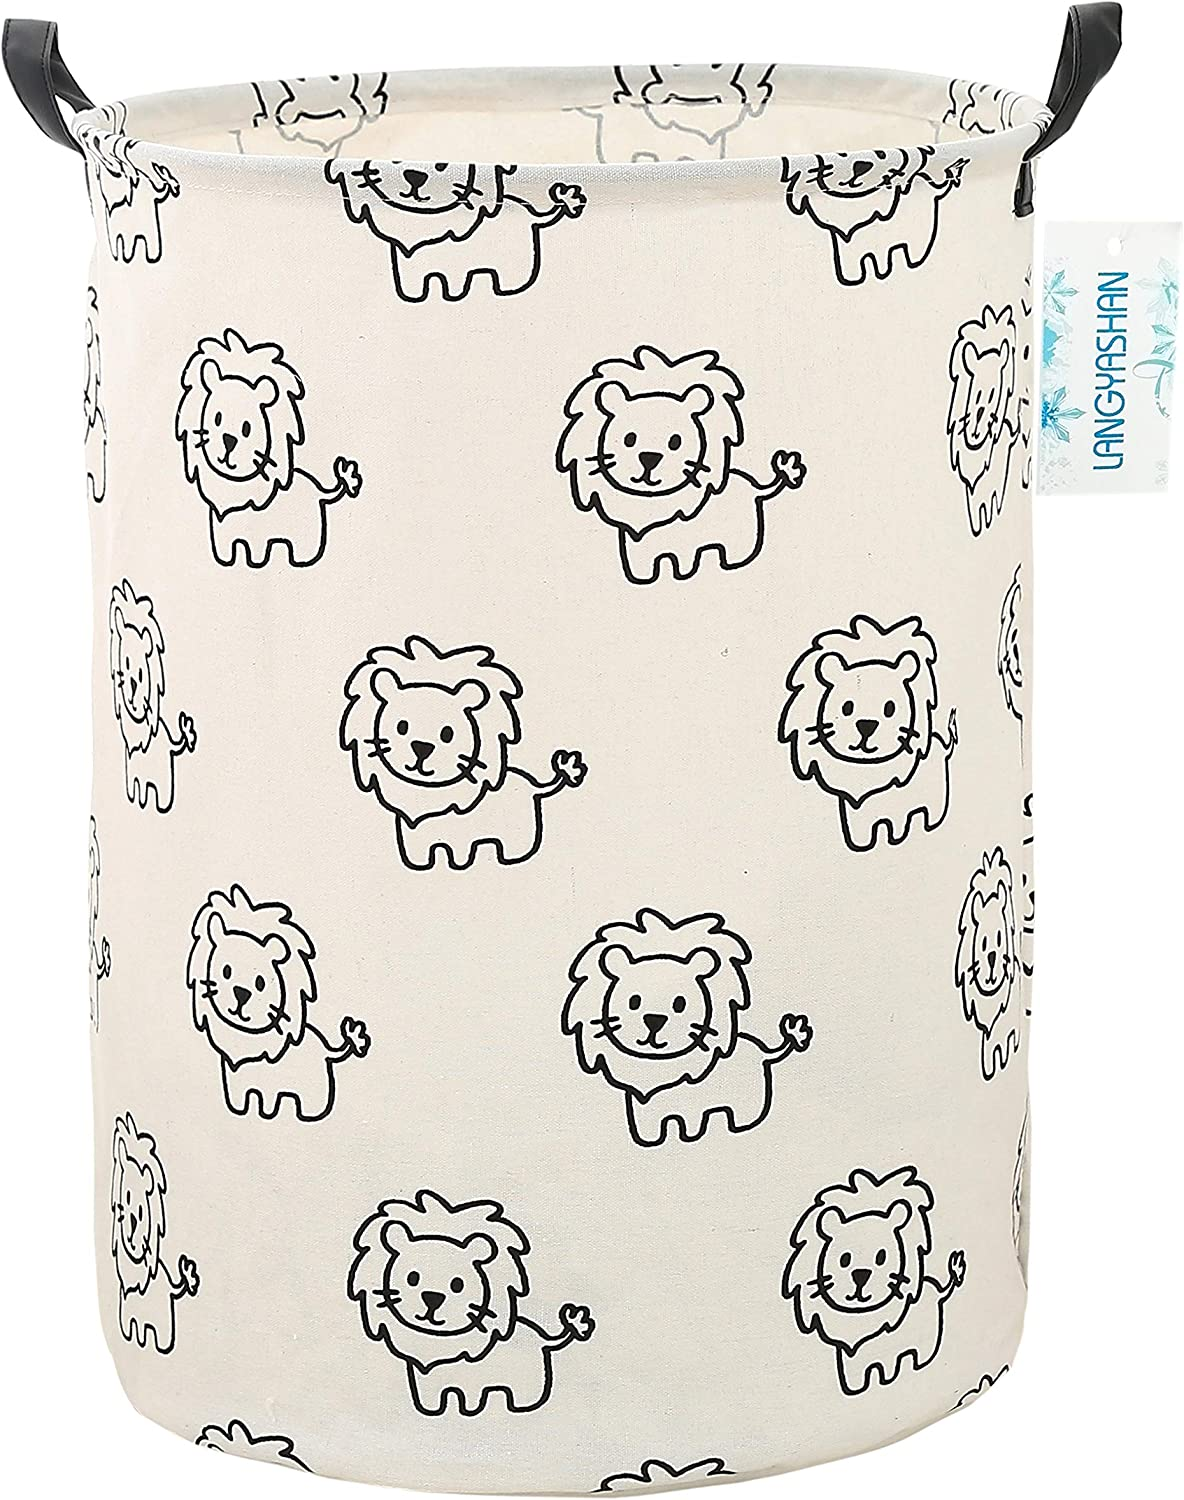 Gery Wave Bedroom LANGYASHAN Storage Bin,Canvas Fabric Collapsible Organizer Basket for Laundry Hamper,Toy Bins,Gift Baskets Clothes,Baby Nursery